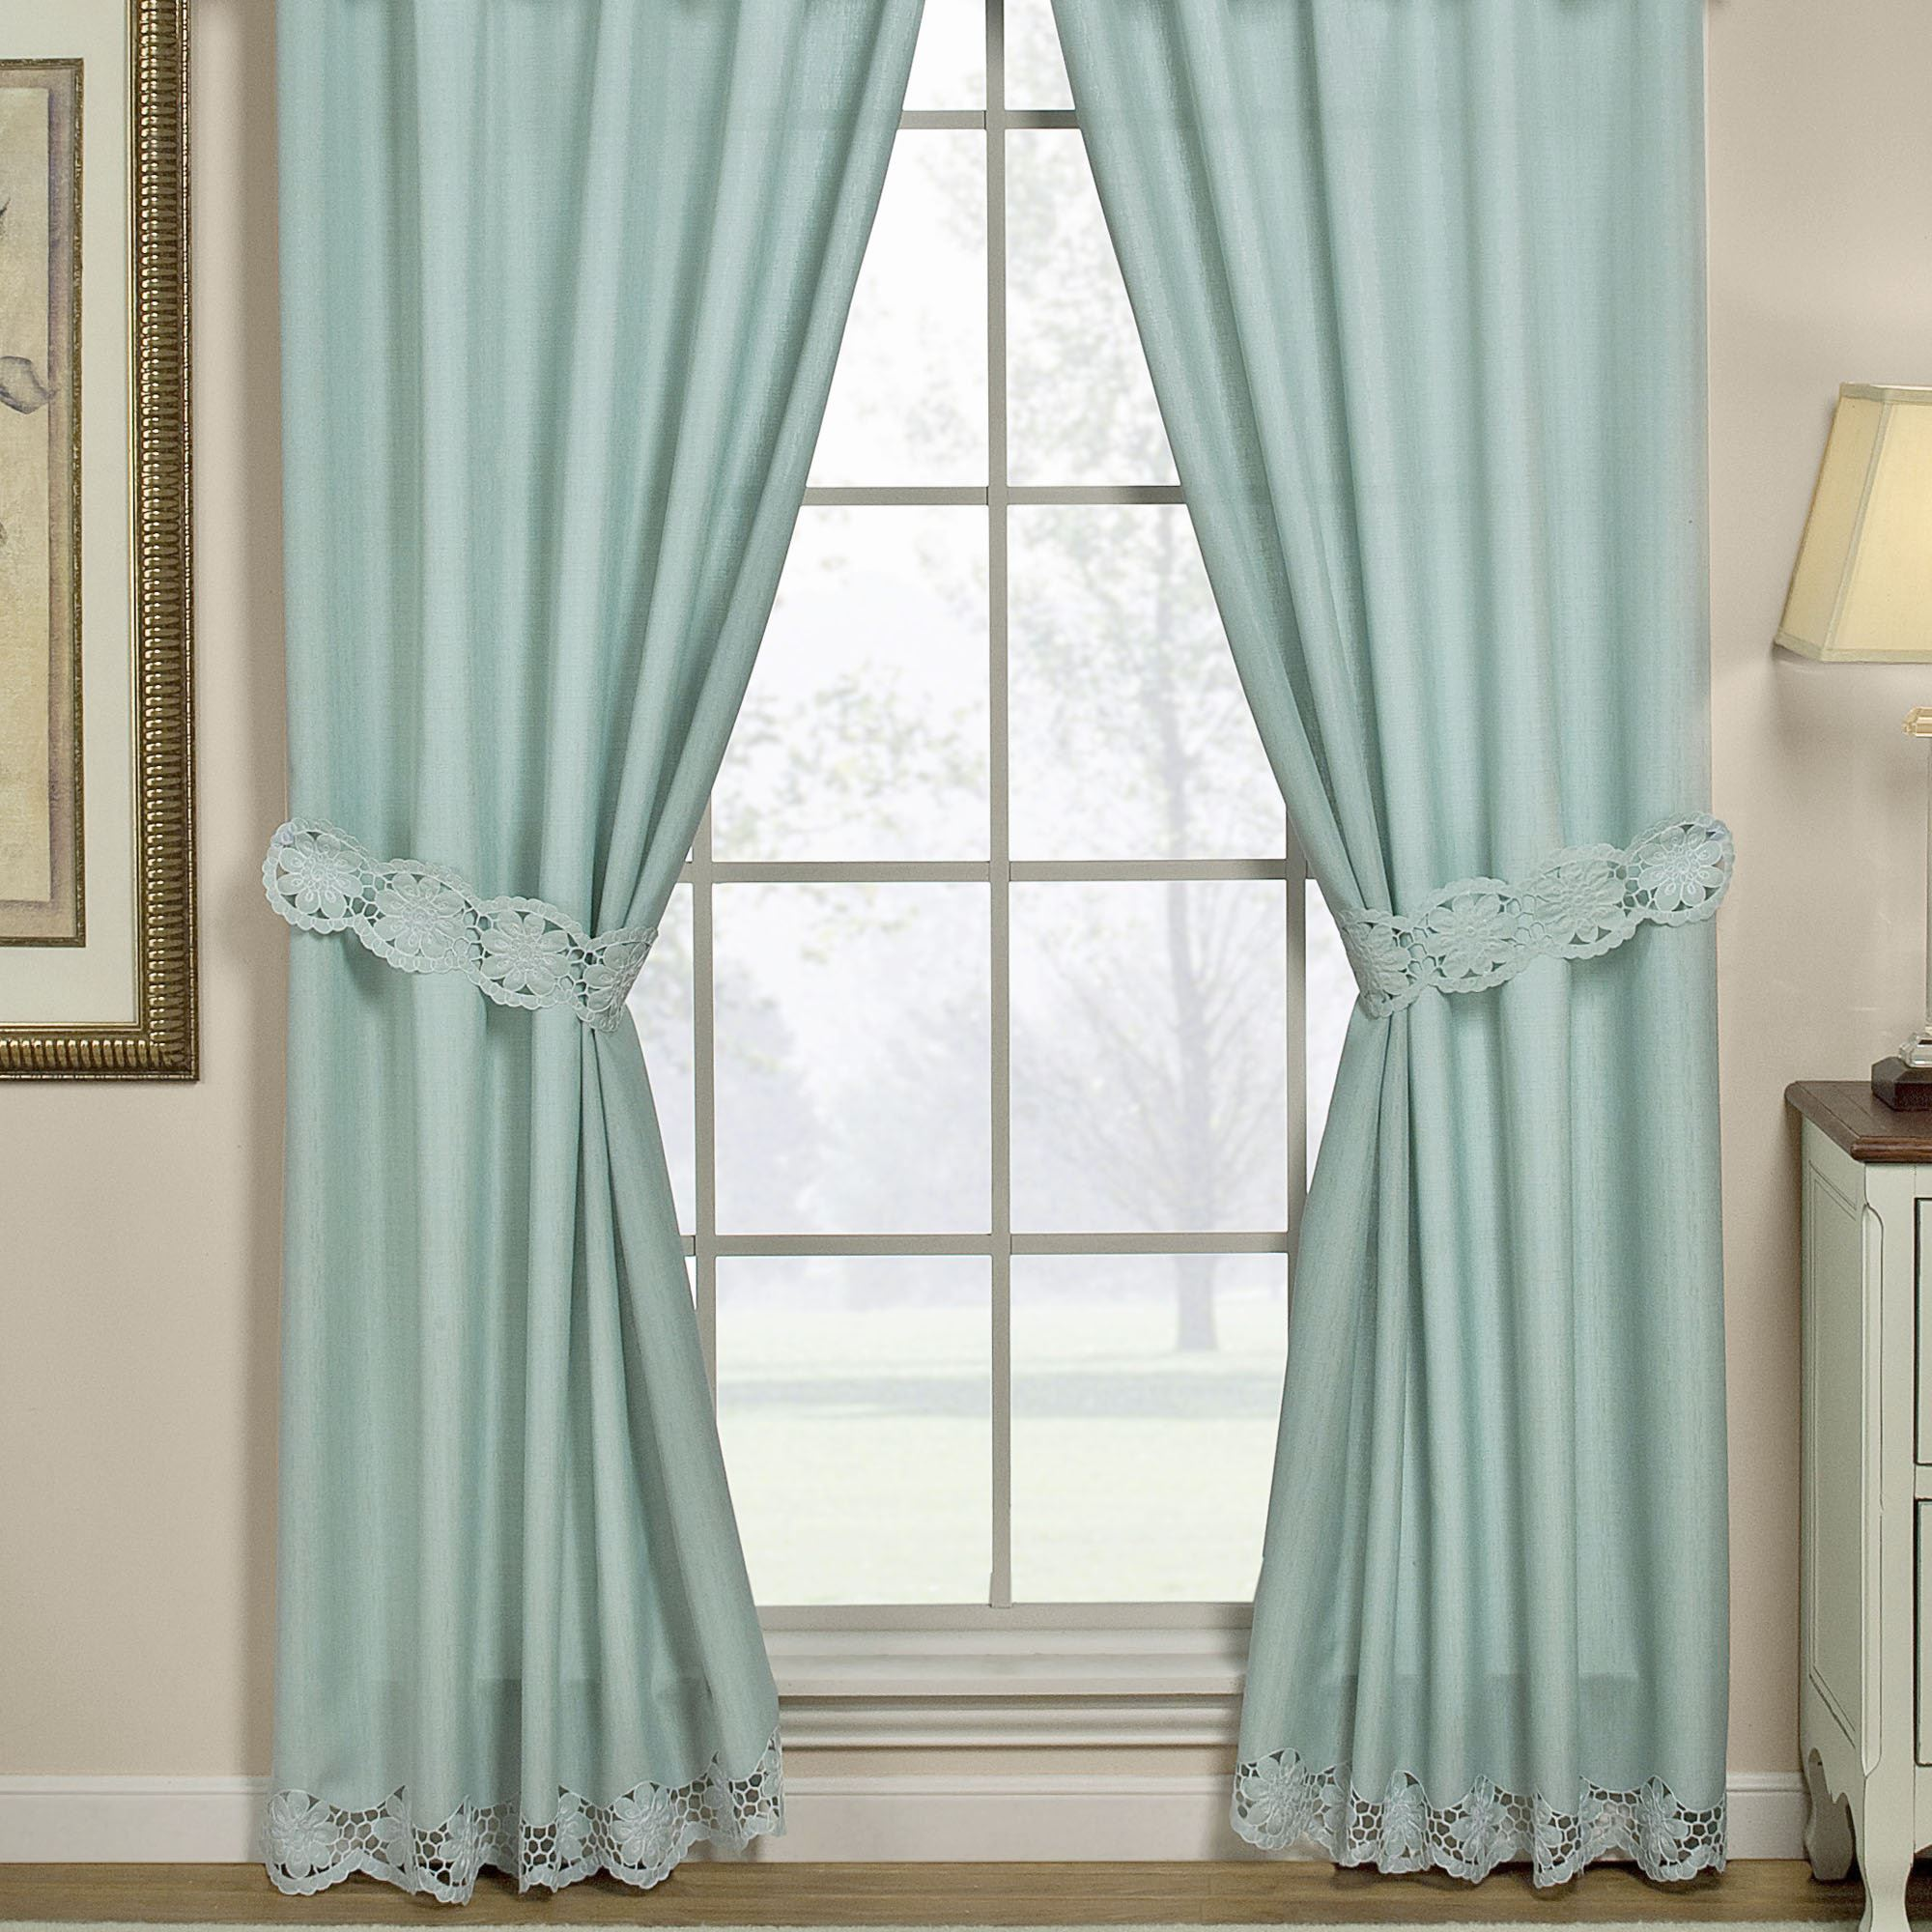 treatment fiona treatments curtains bathroom lace pin scottish curtain window